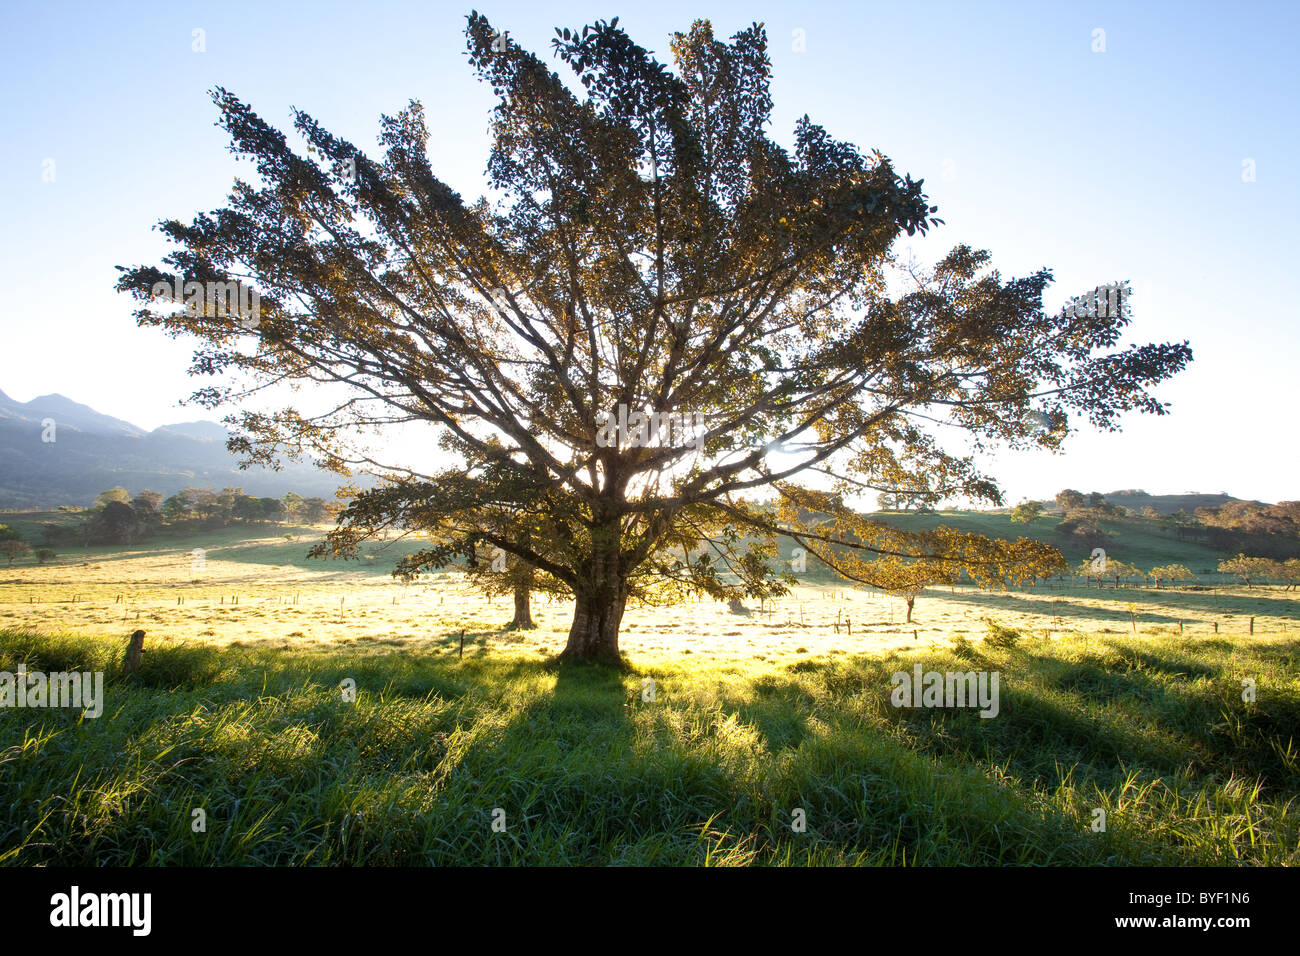 Tree at sunrise,at Volcan in Chiriqui province, Republic of Panama. - Stock Image